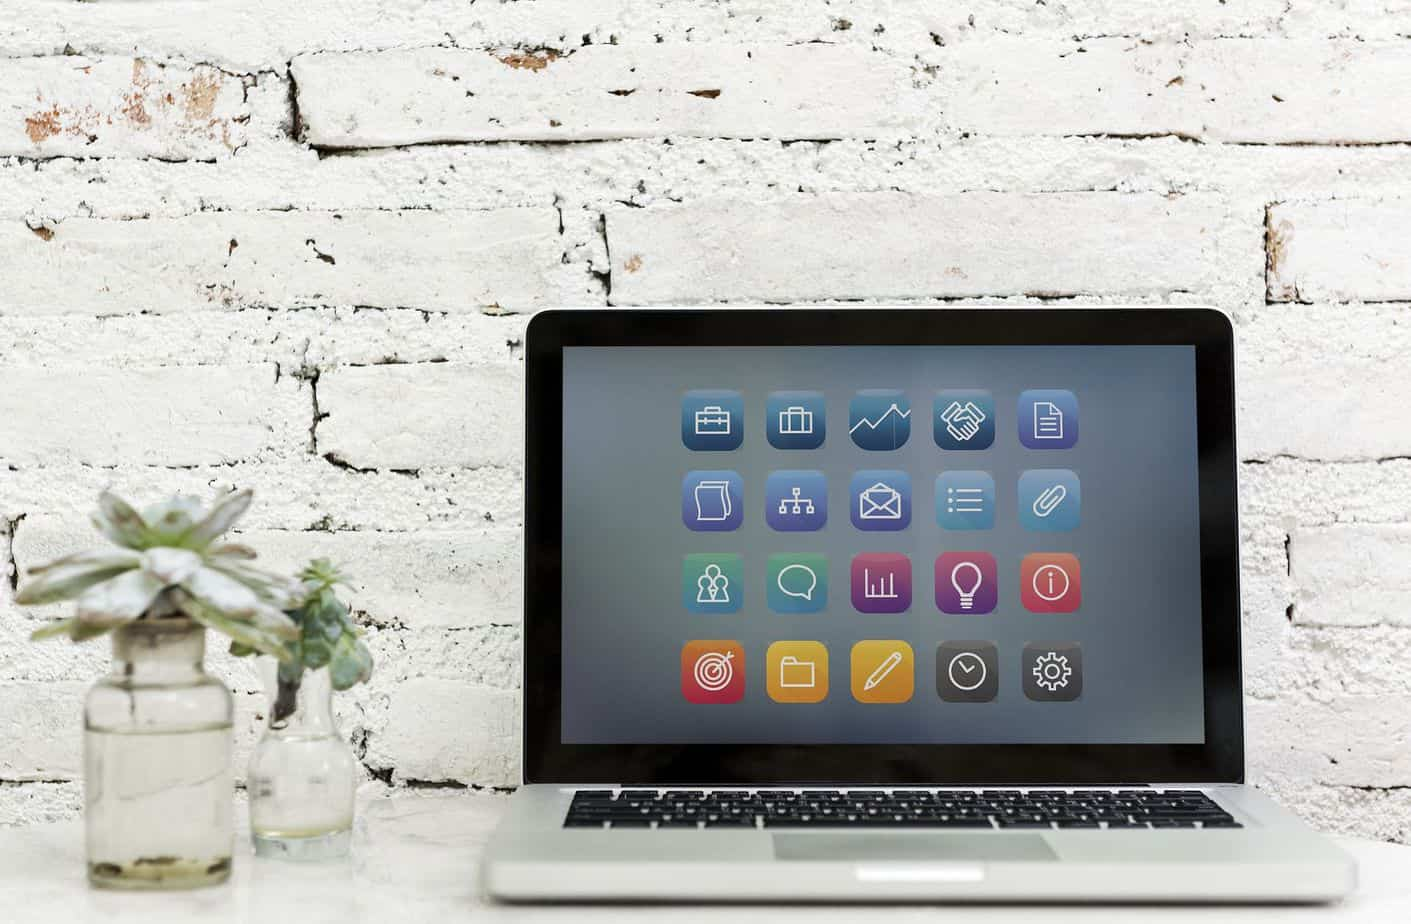 5 Technologies to Implement Into Your Business